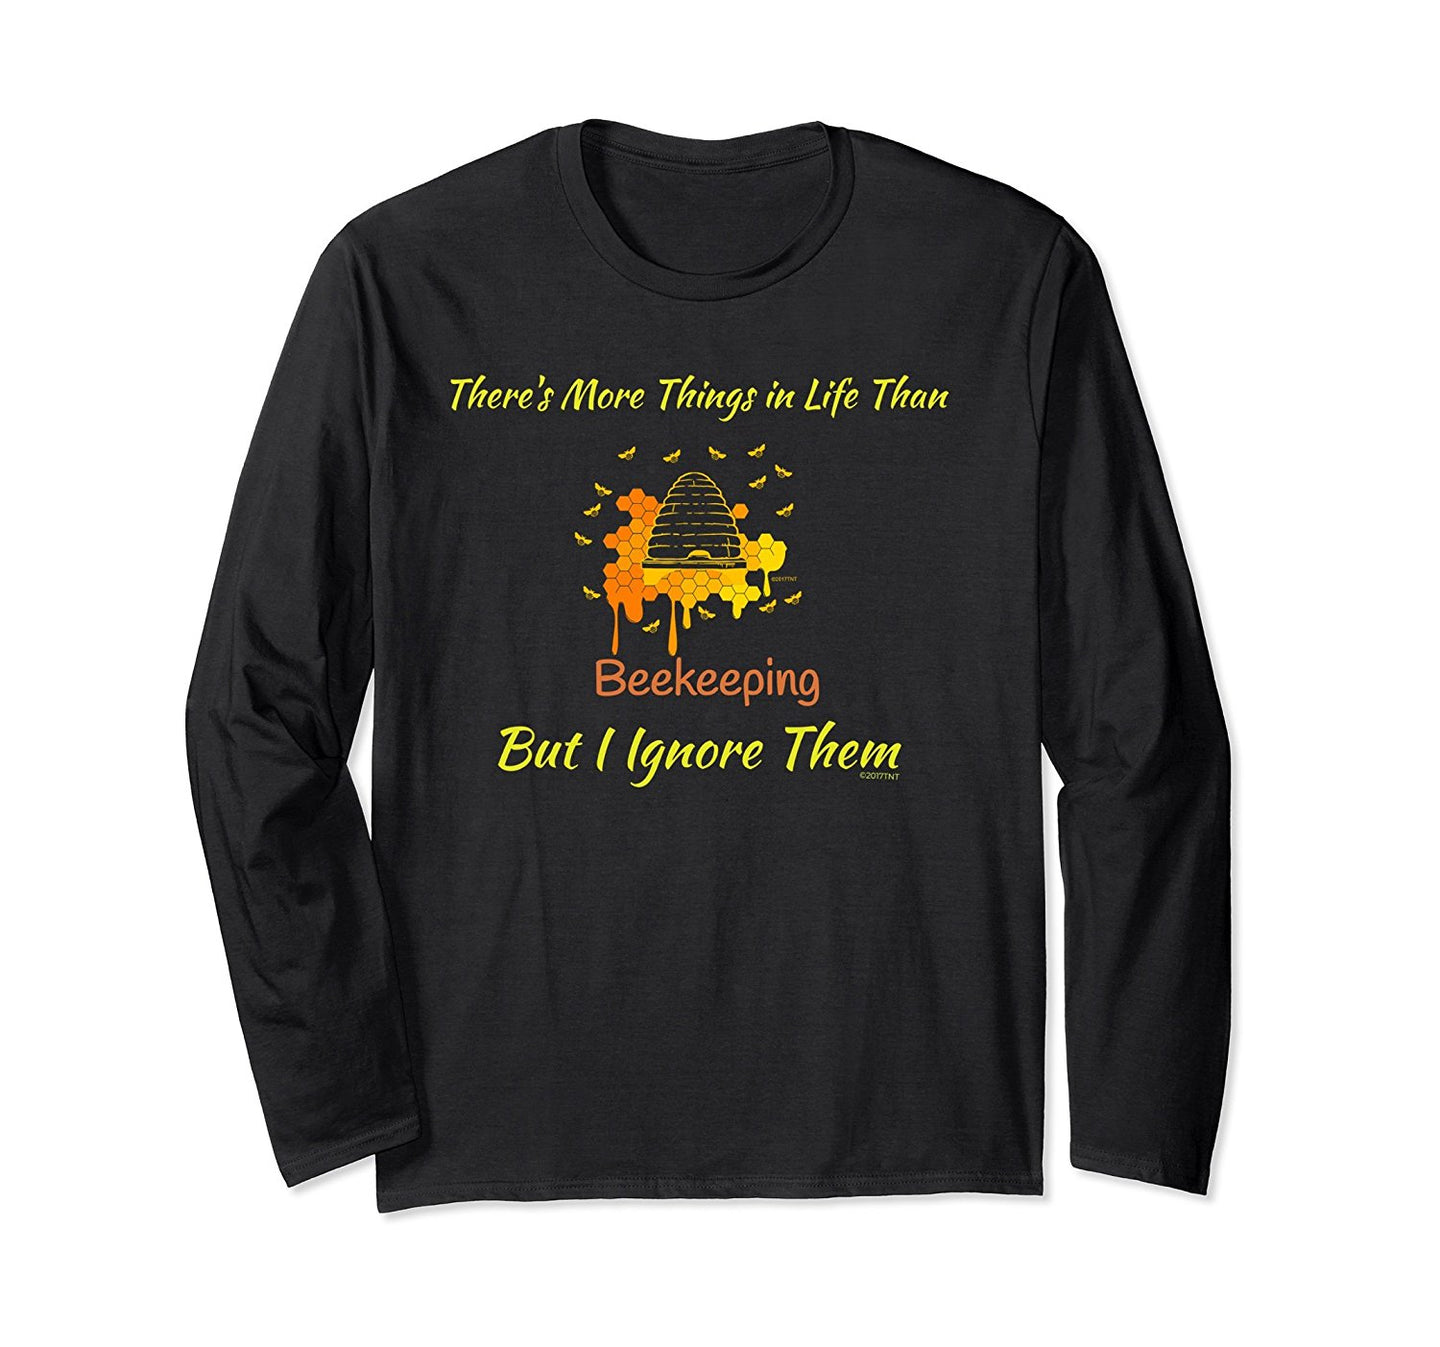 There's More in Life Than Beekeeping But I Ignore Them Shirt